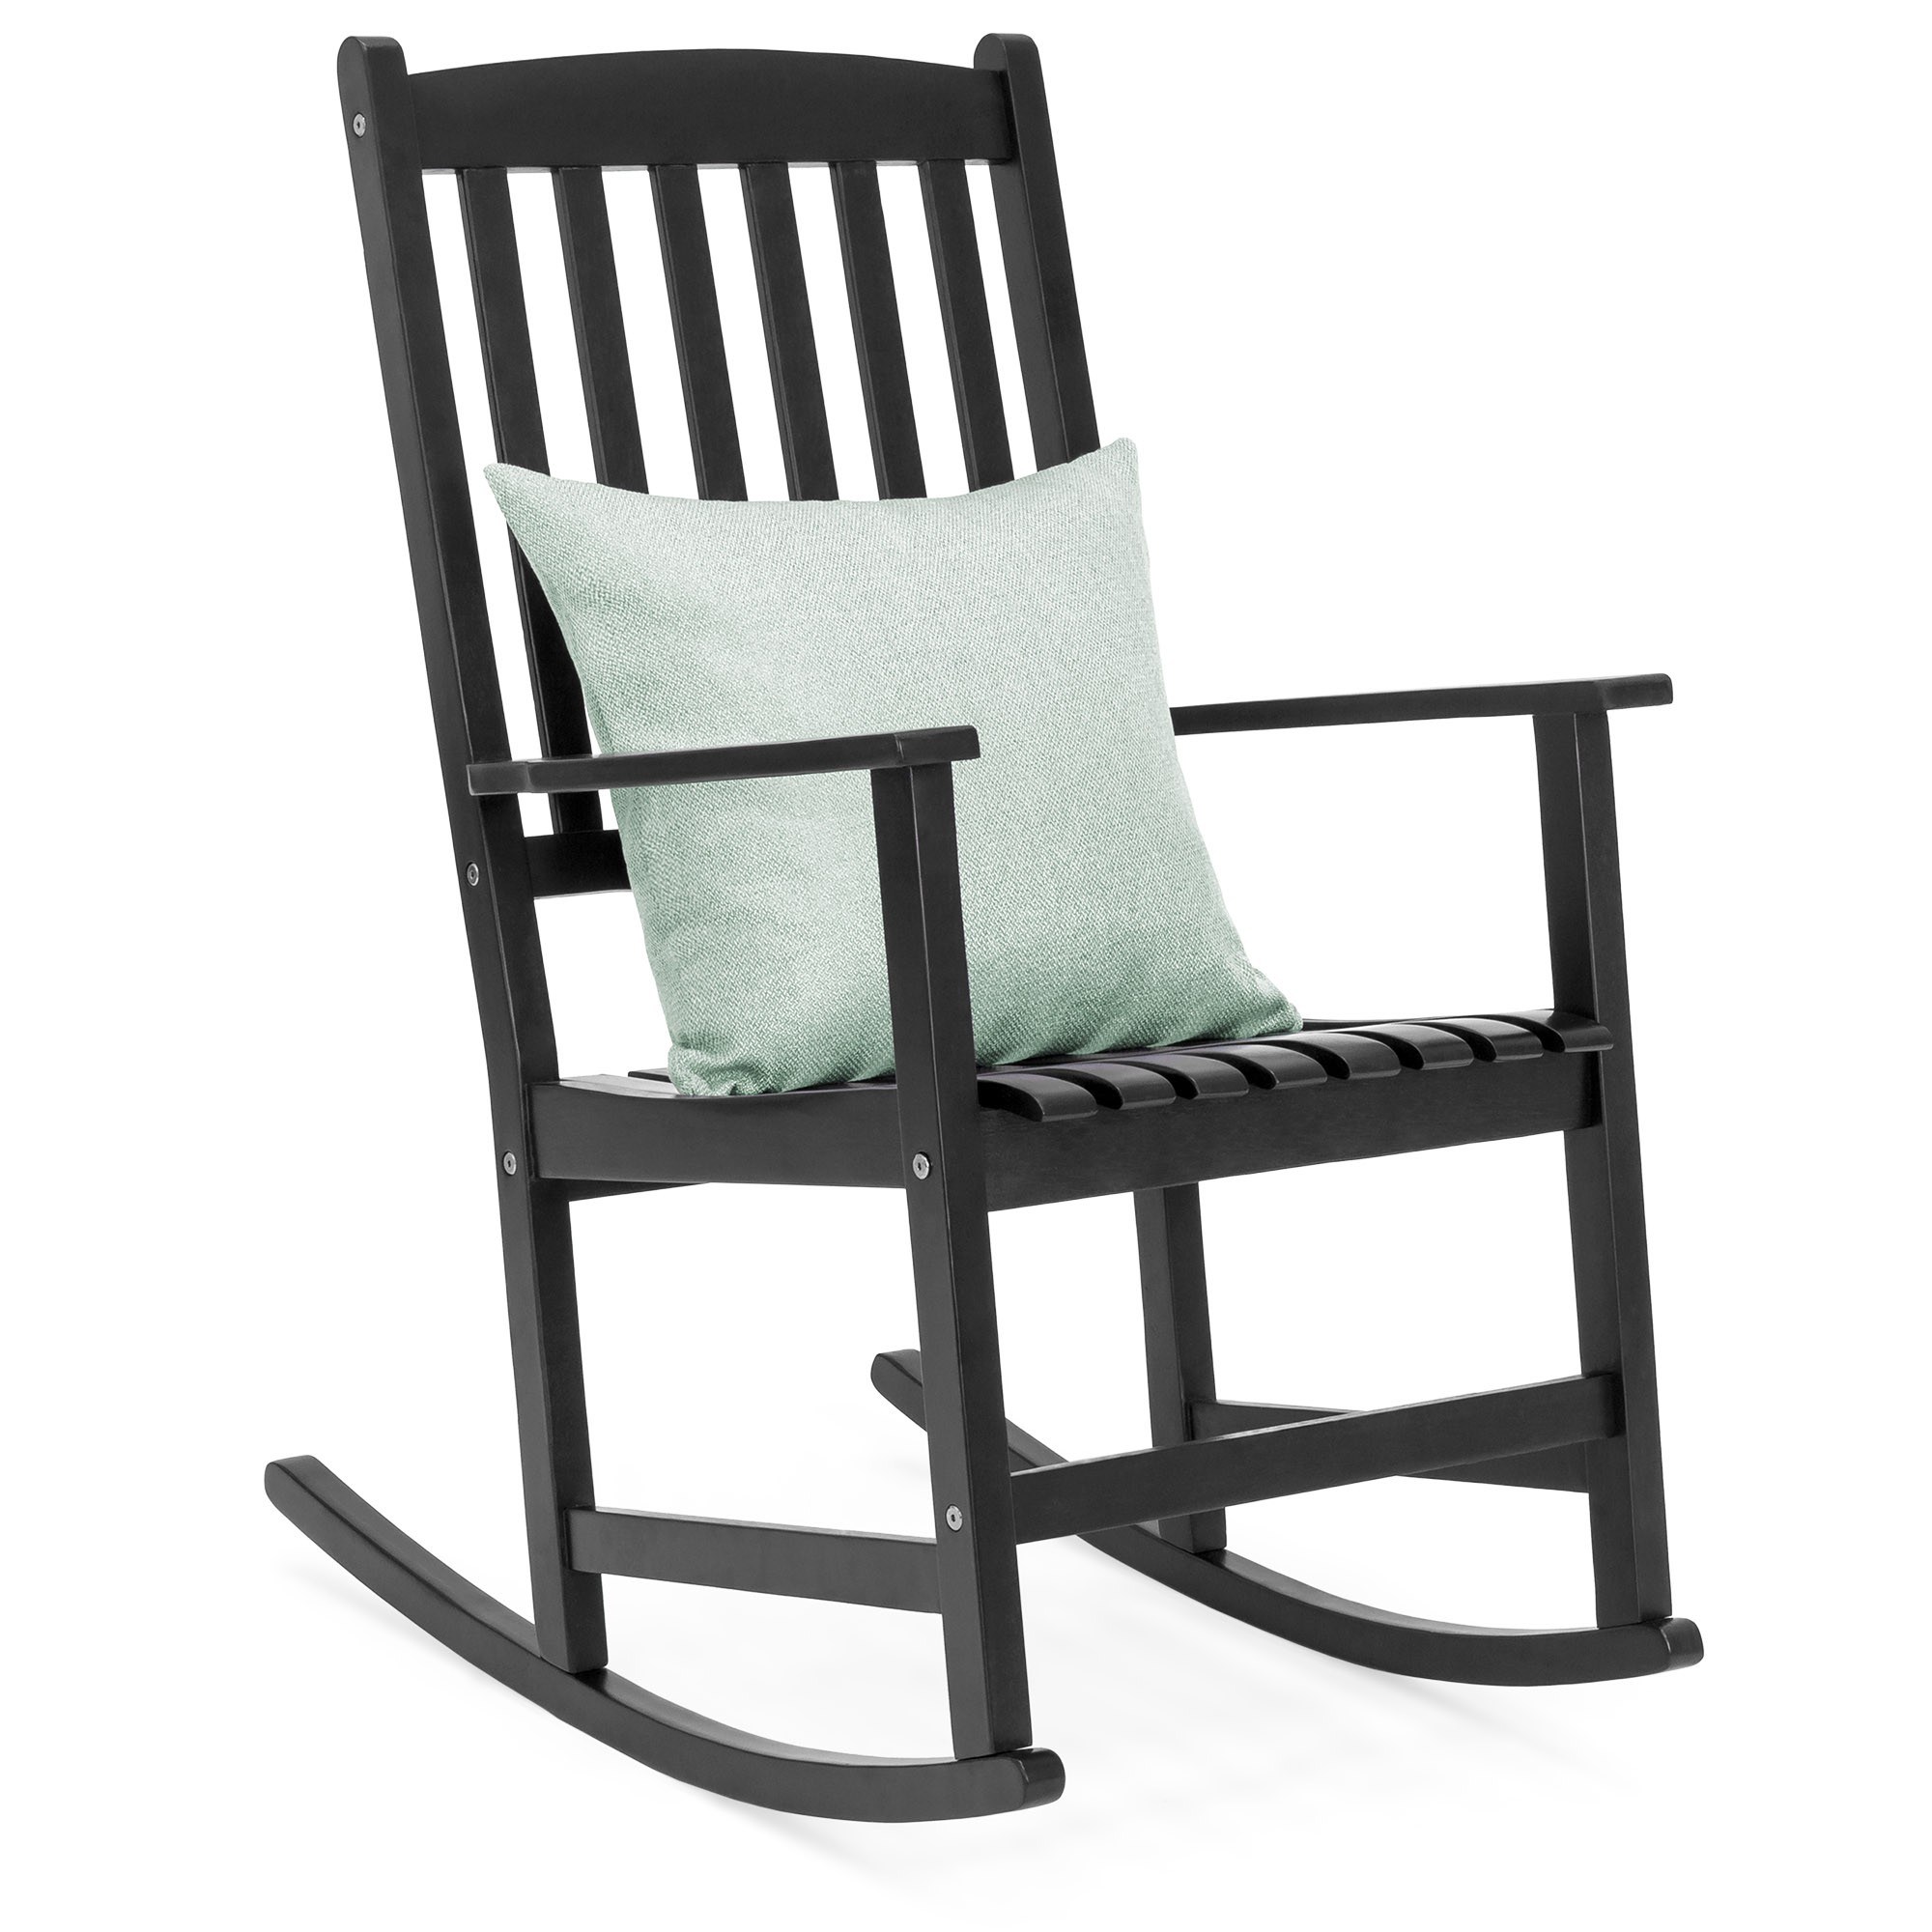 Best Choice Products Indoor Outdoor Traditional Wooden Rocking Chair  Furniture W/ Slatted Seat And Backrest For Patio, Porch, Living Room, Home Regarding Traditional Style Wooden Rocking Chairs With Contoured Seat, Black (#3 of 20)